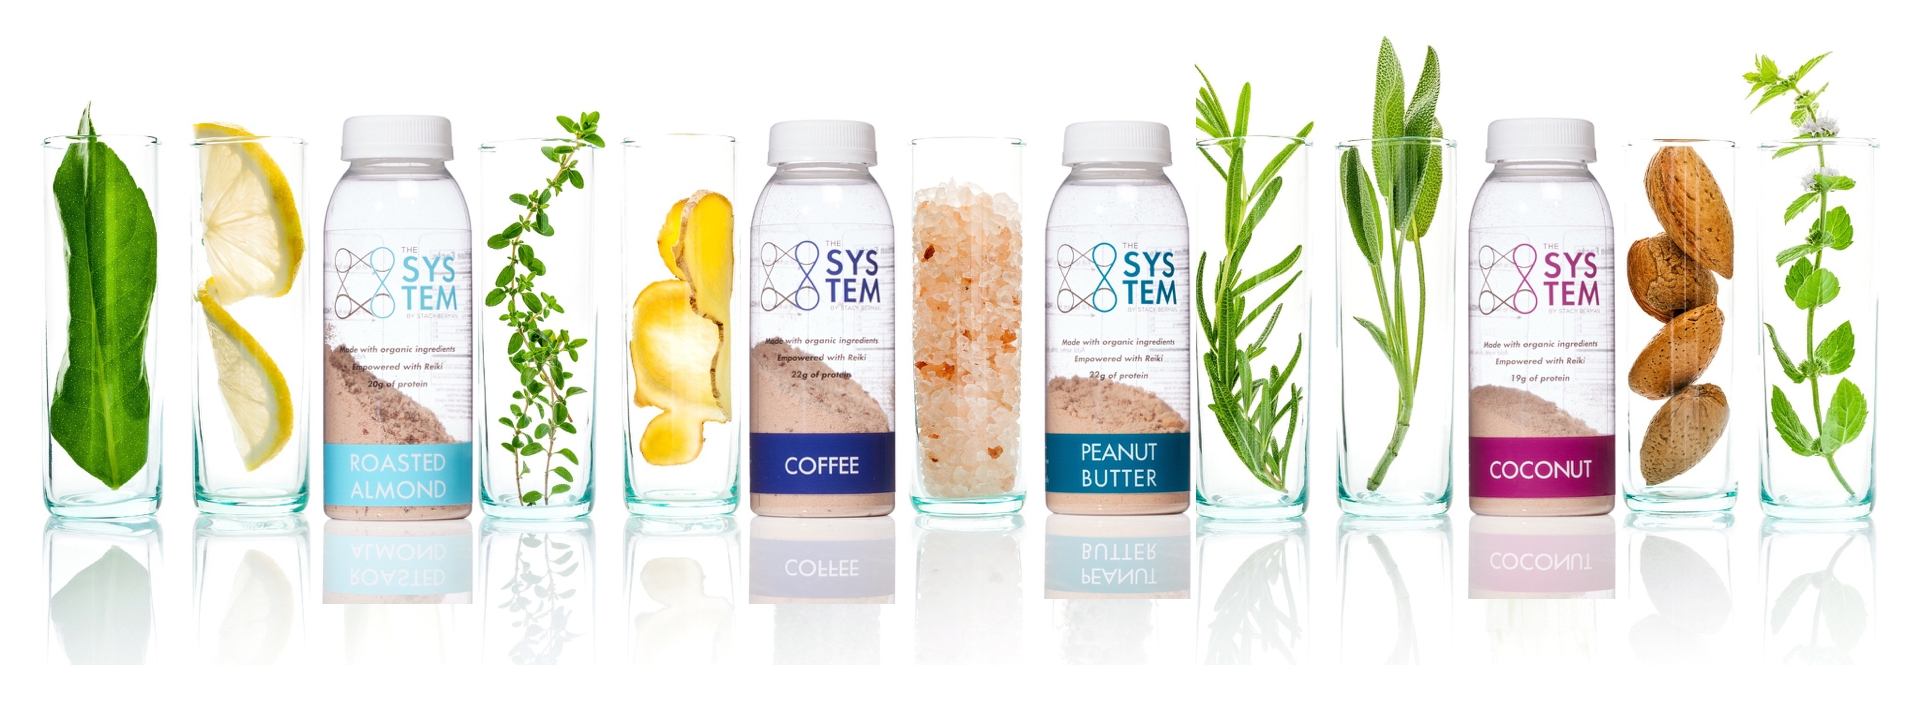 Made with organic ingredients, non-GMO, gluten-free, soy-free, antibiotic-free, hormone-free and paleo friendly.